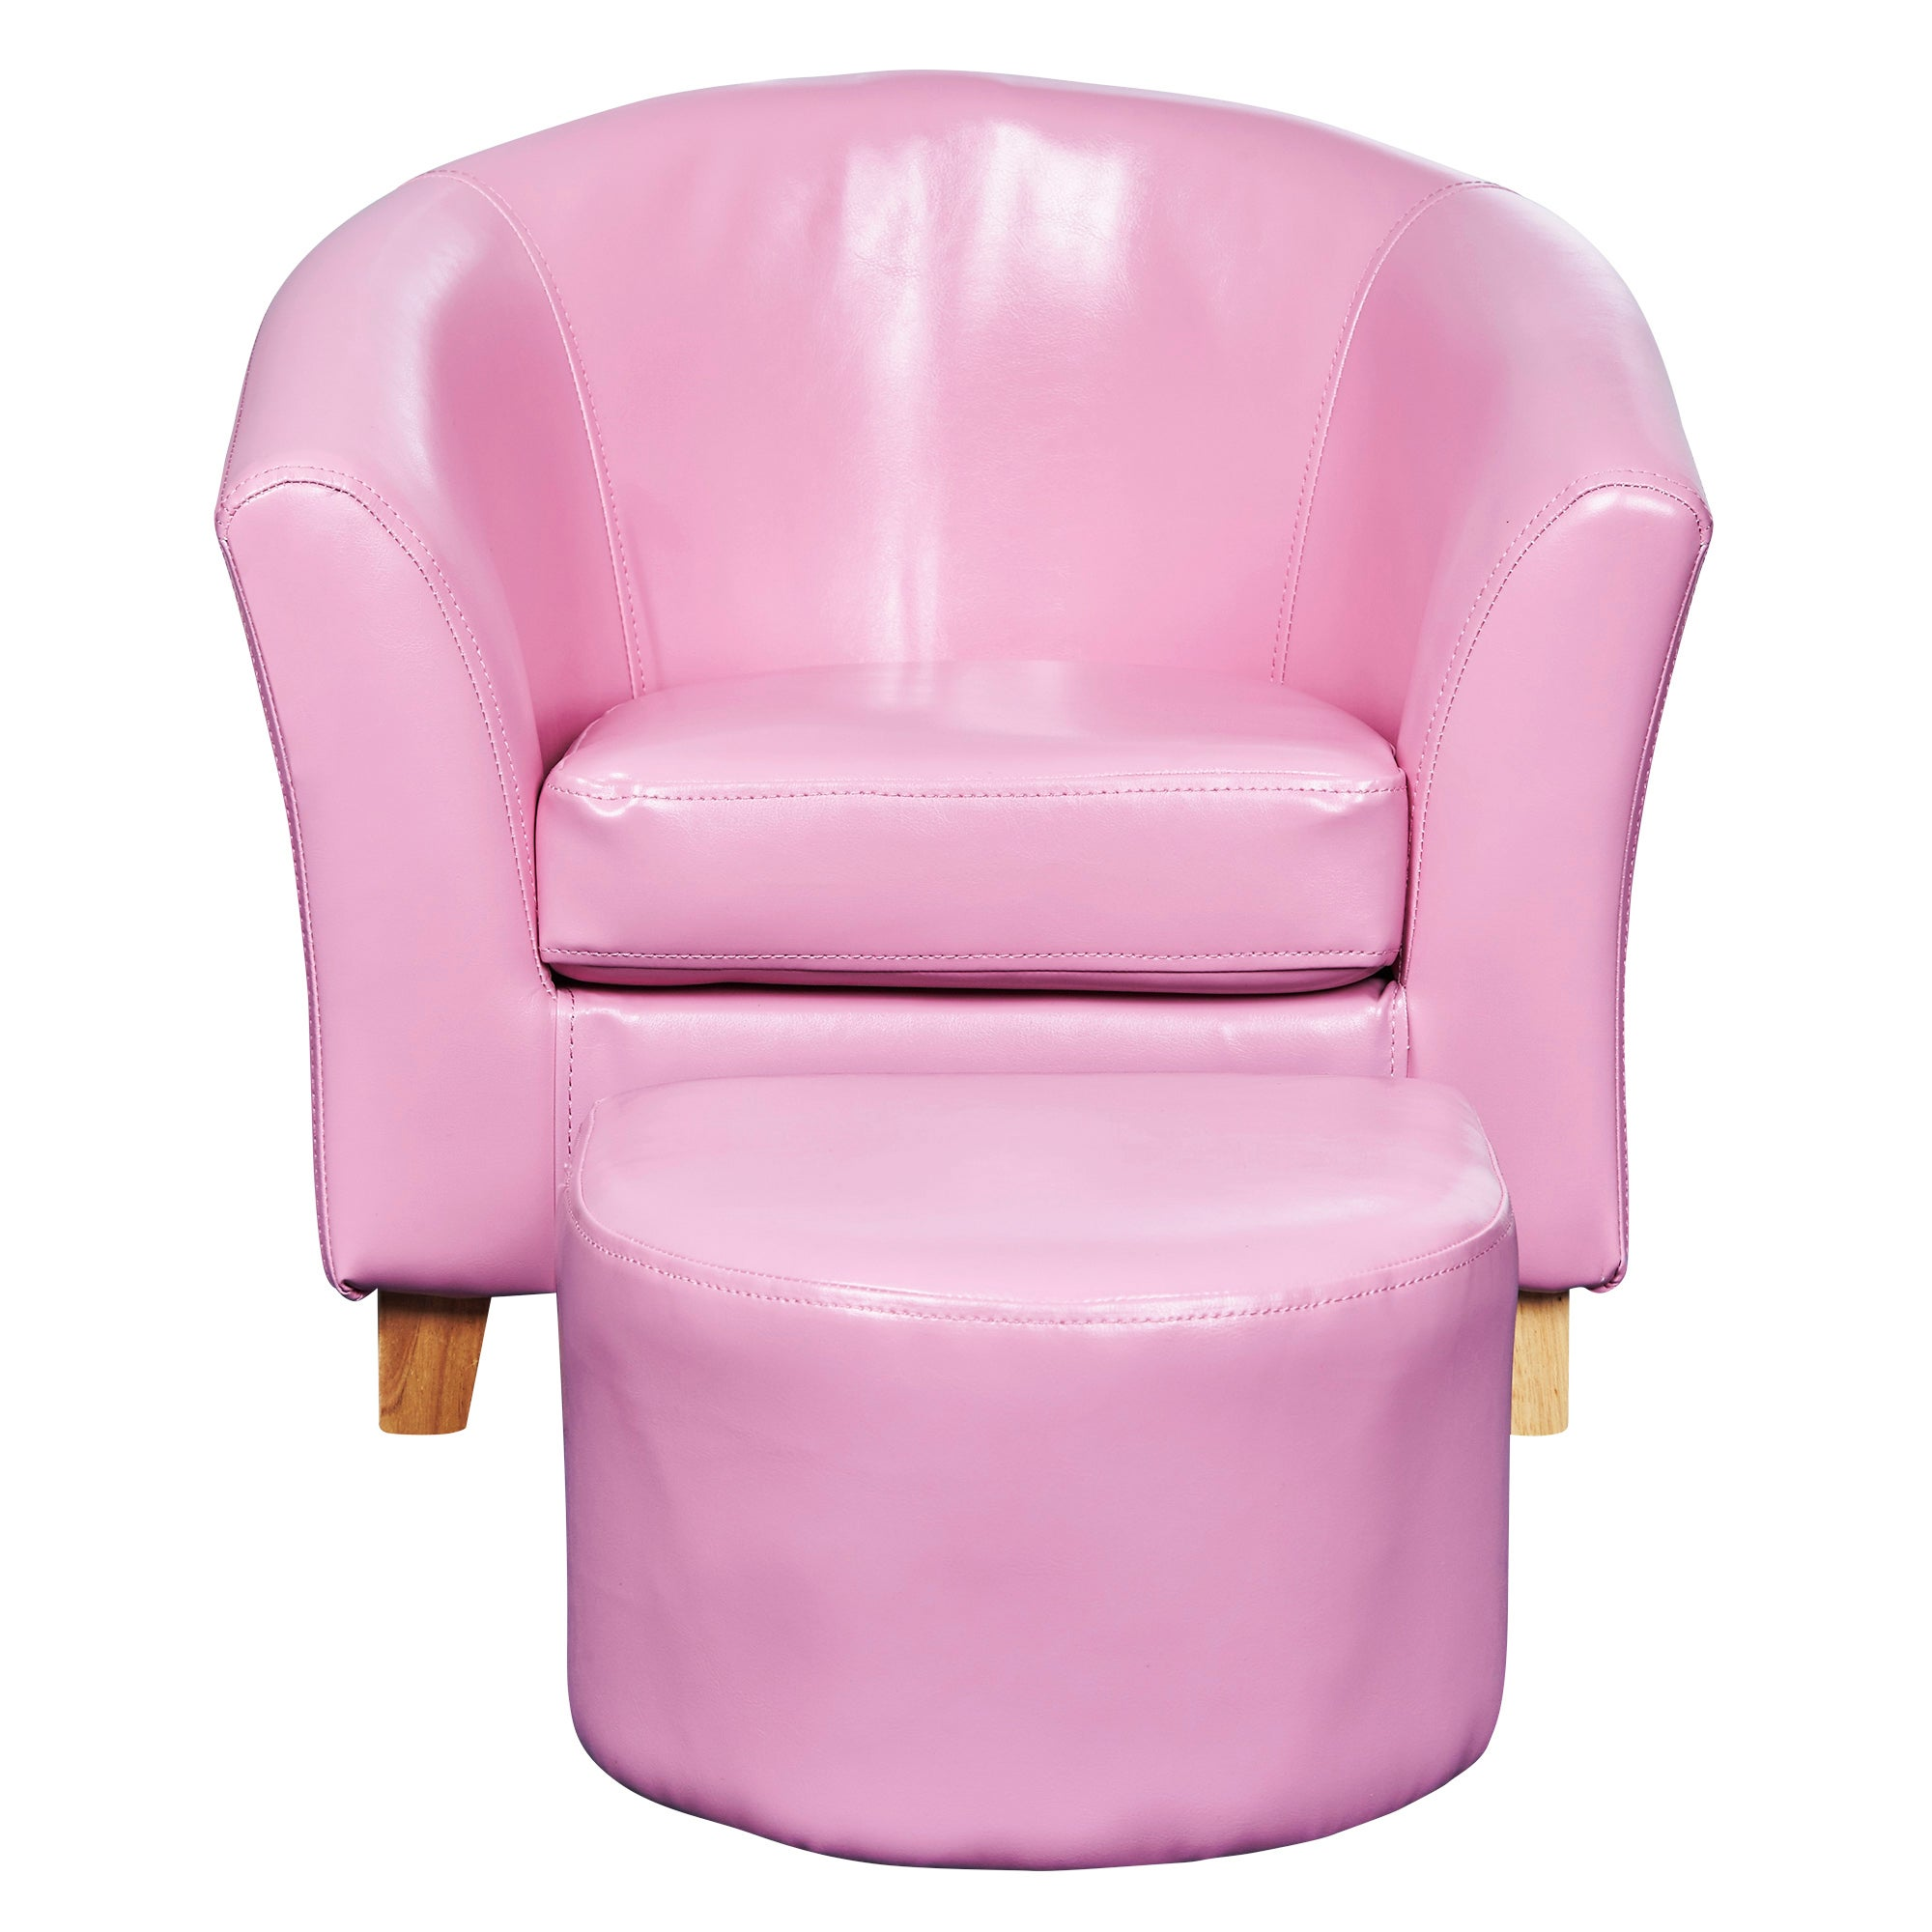 Kids Pink Faux Leather Tub Chair and Stool